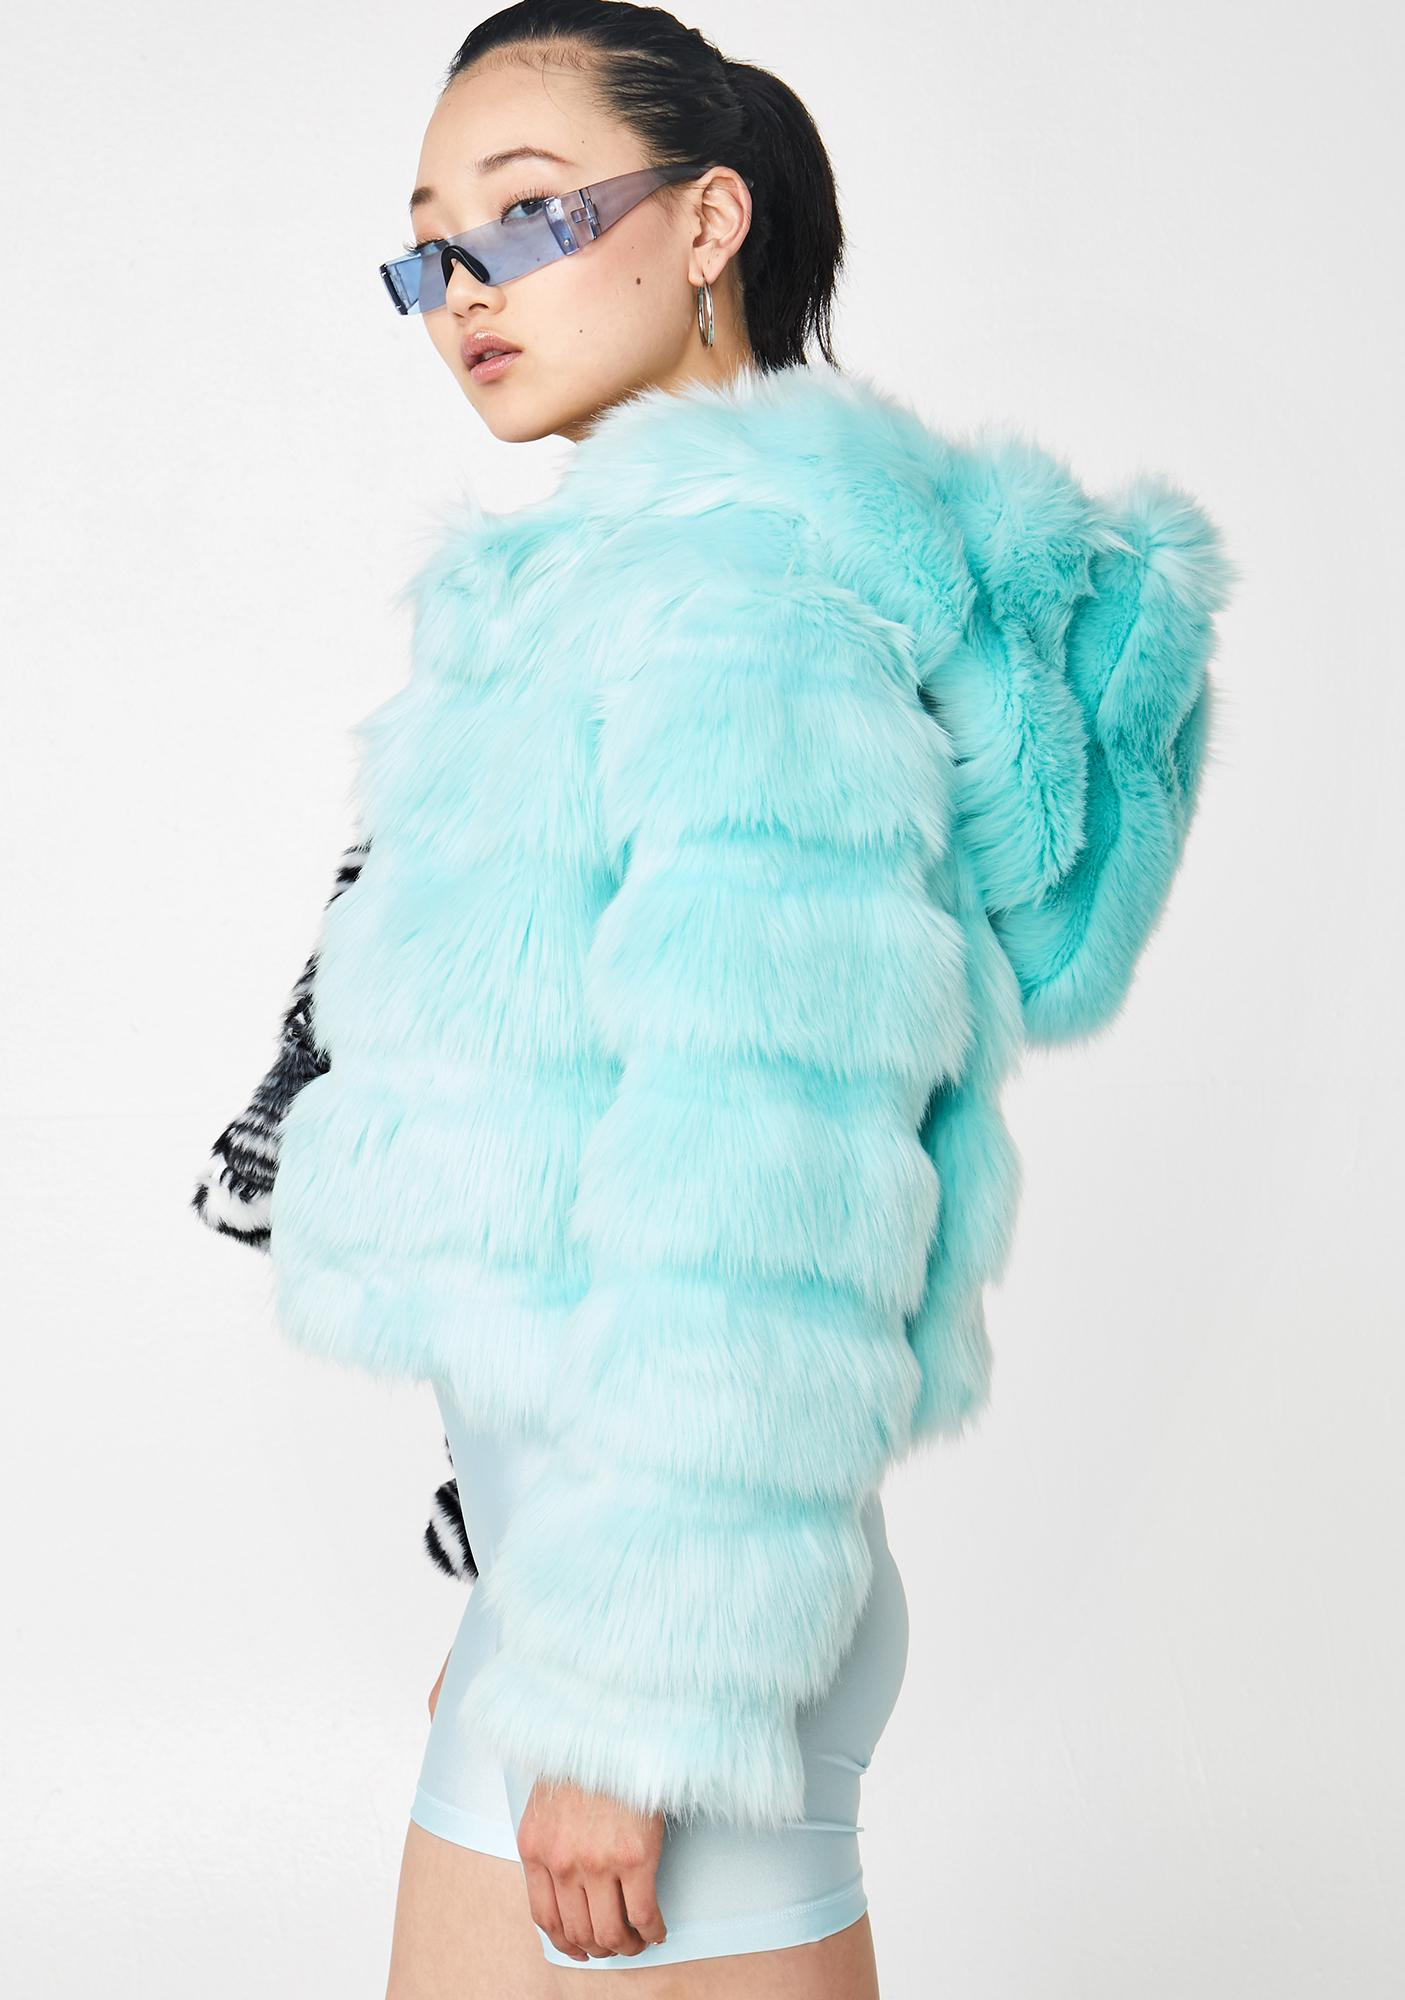 Ivy Berlin Two Faced Faux Fur Jacket